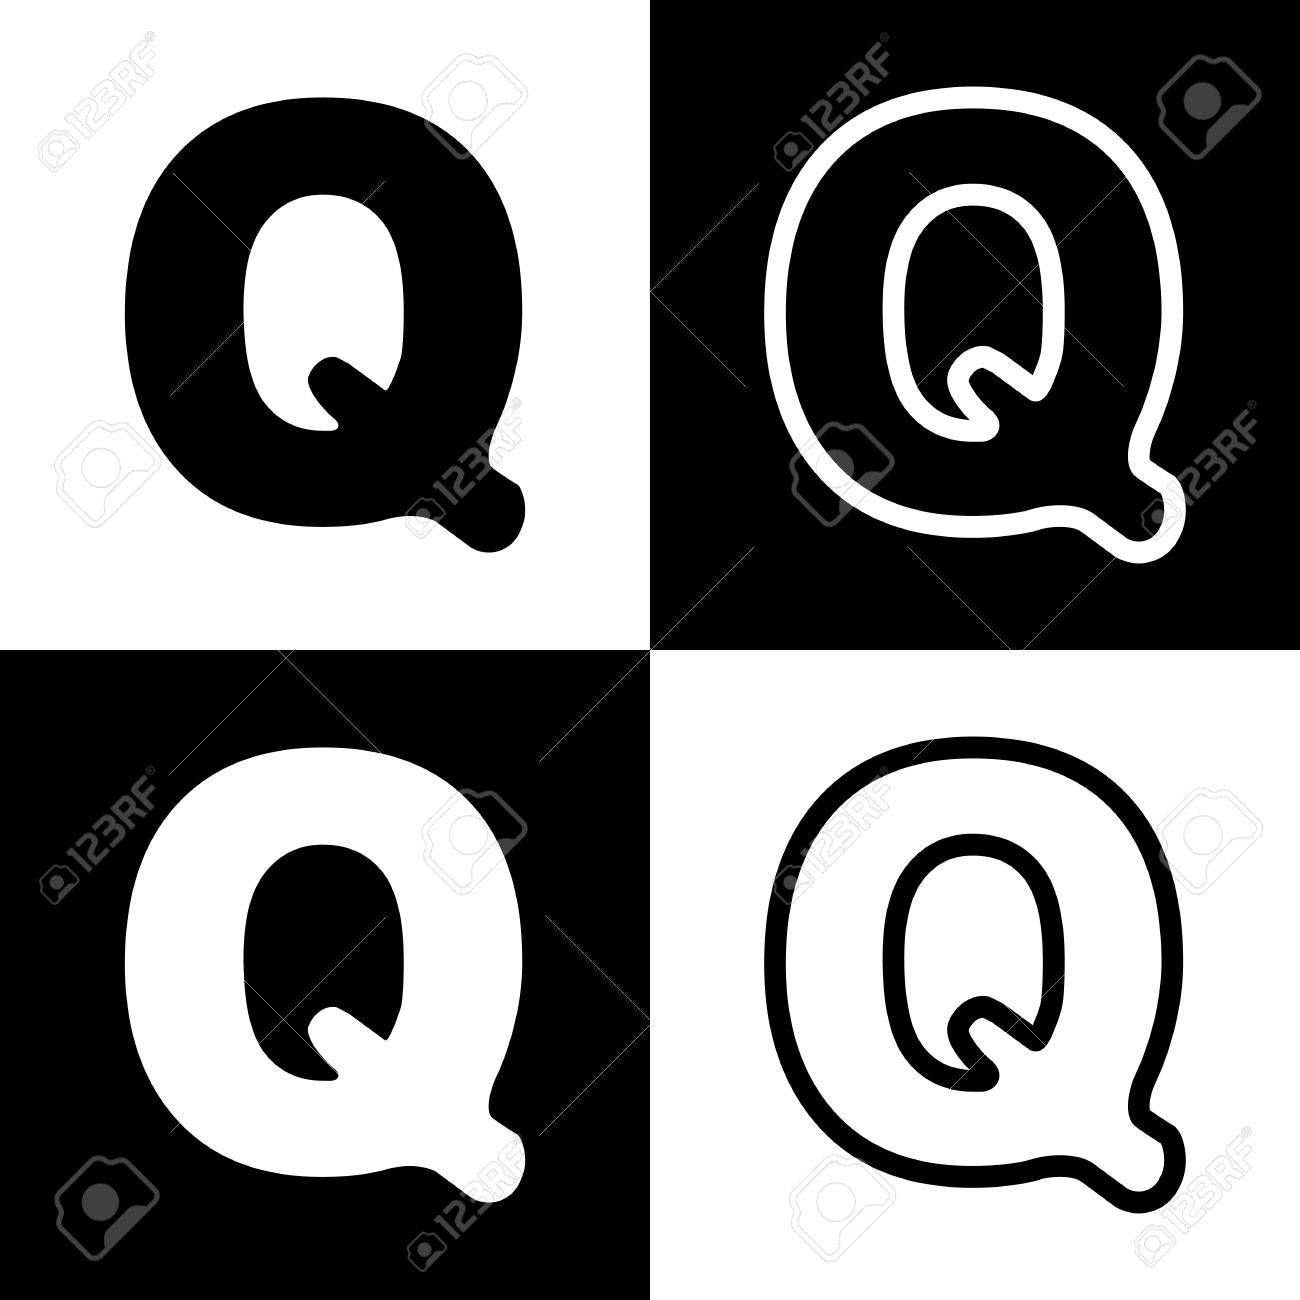 Letter Q Sign Design Template Element Vector Black And White